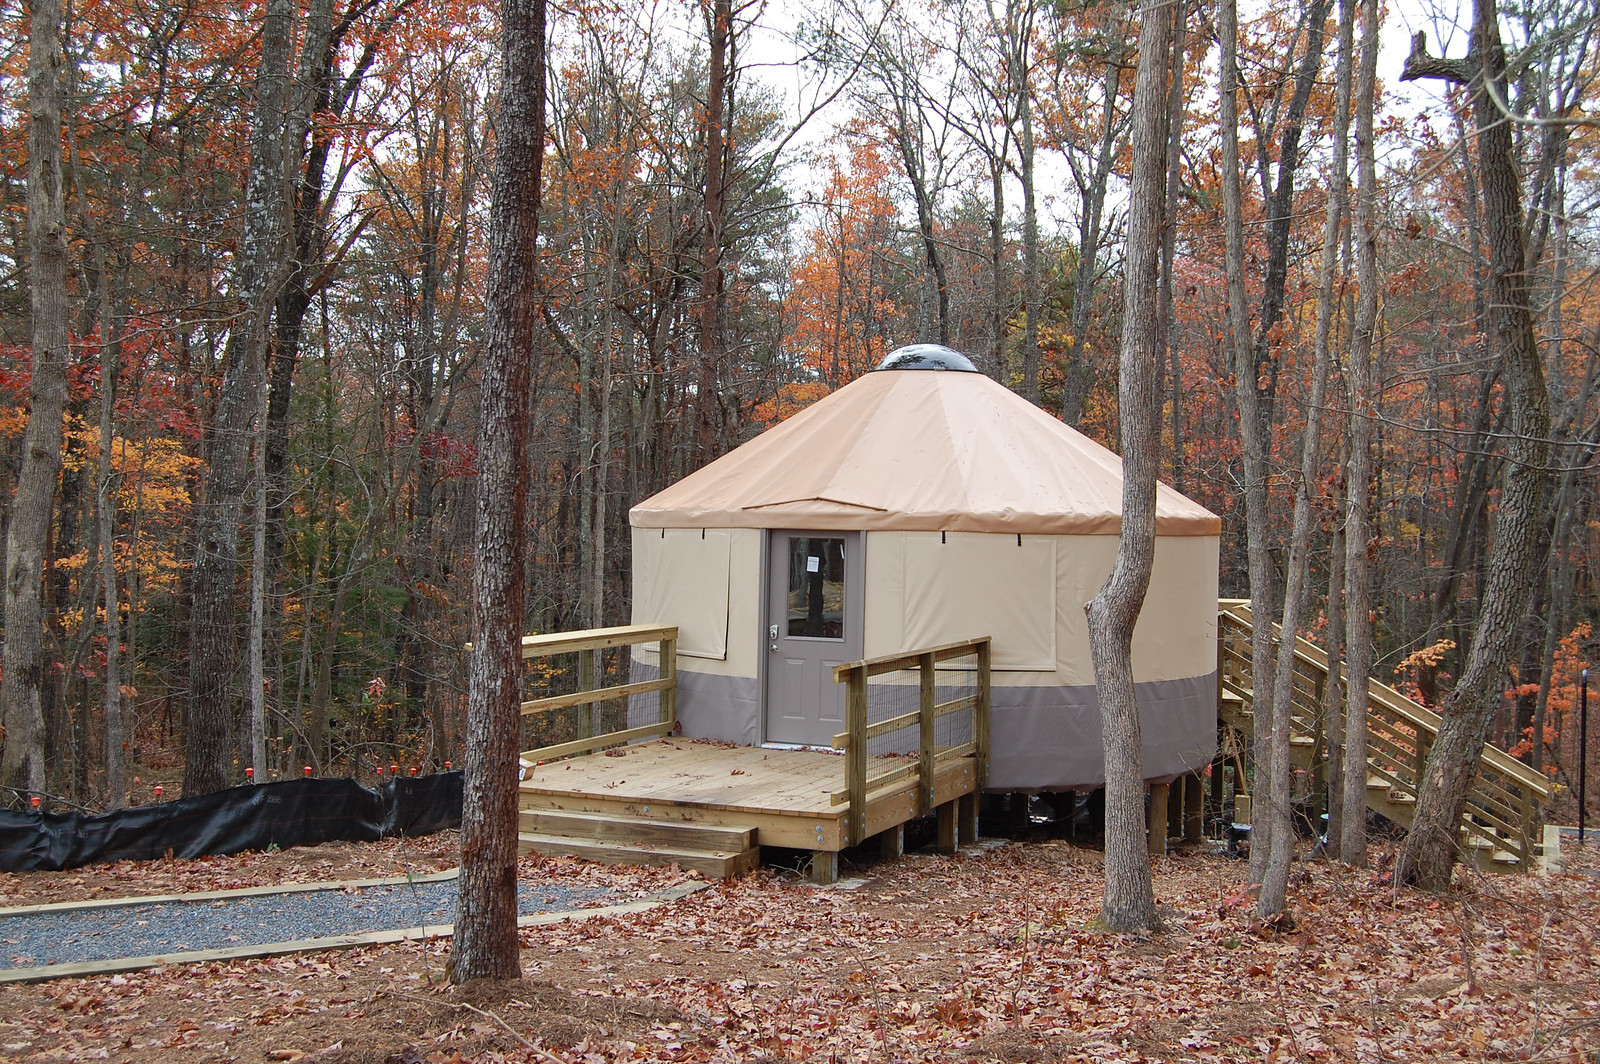 Yurt at Cloudland Canyon State Park